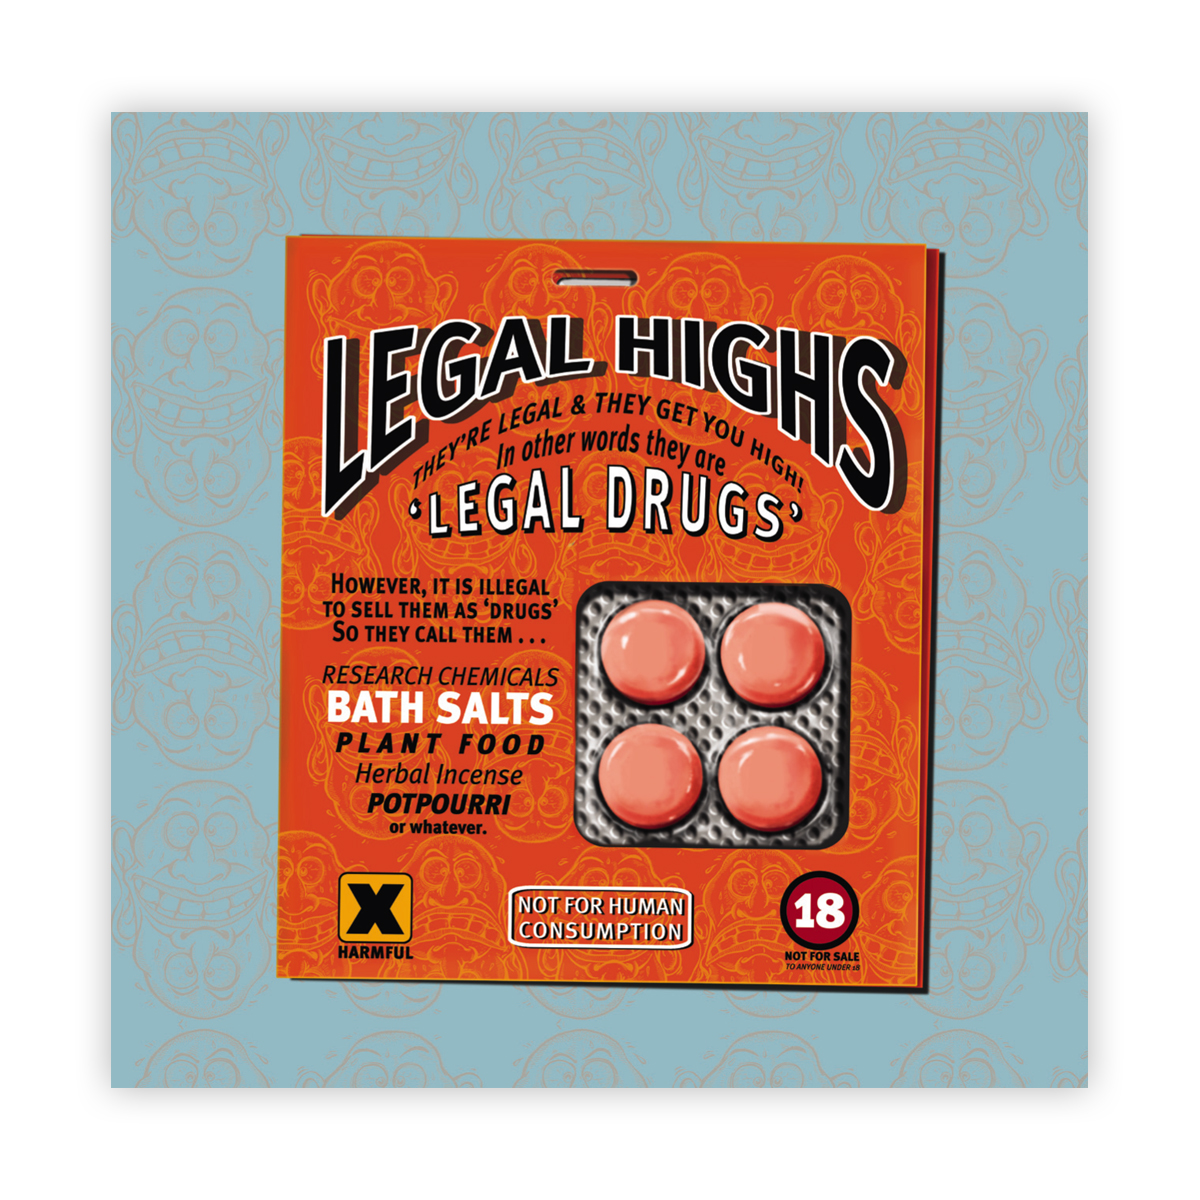 Buy herbal highs -  Legal Highs Tips For Safer Use Being Updated